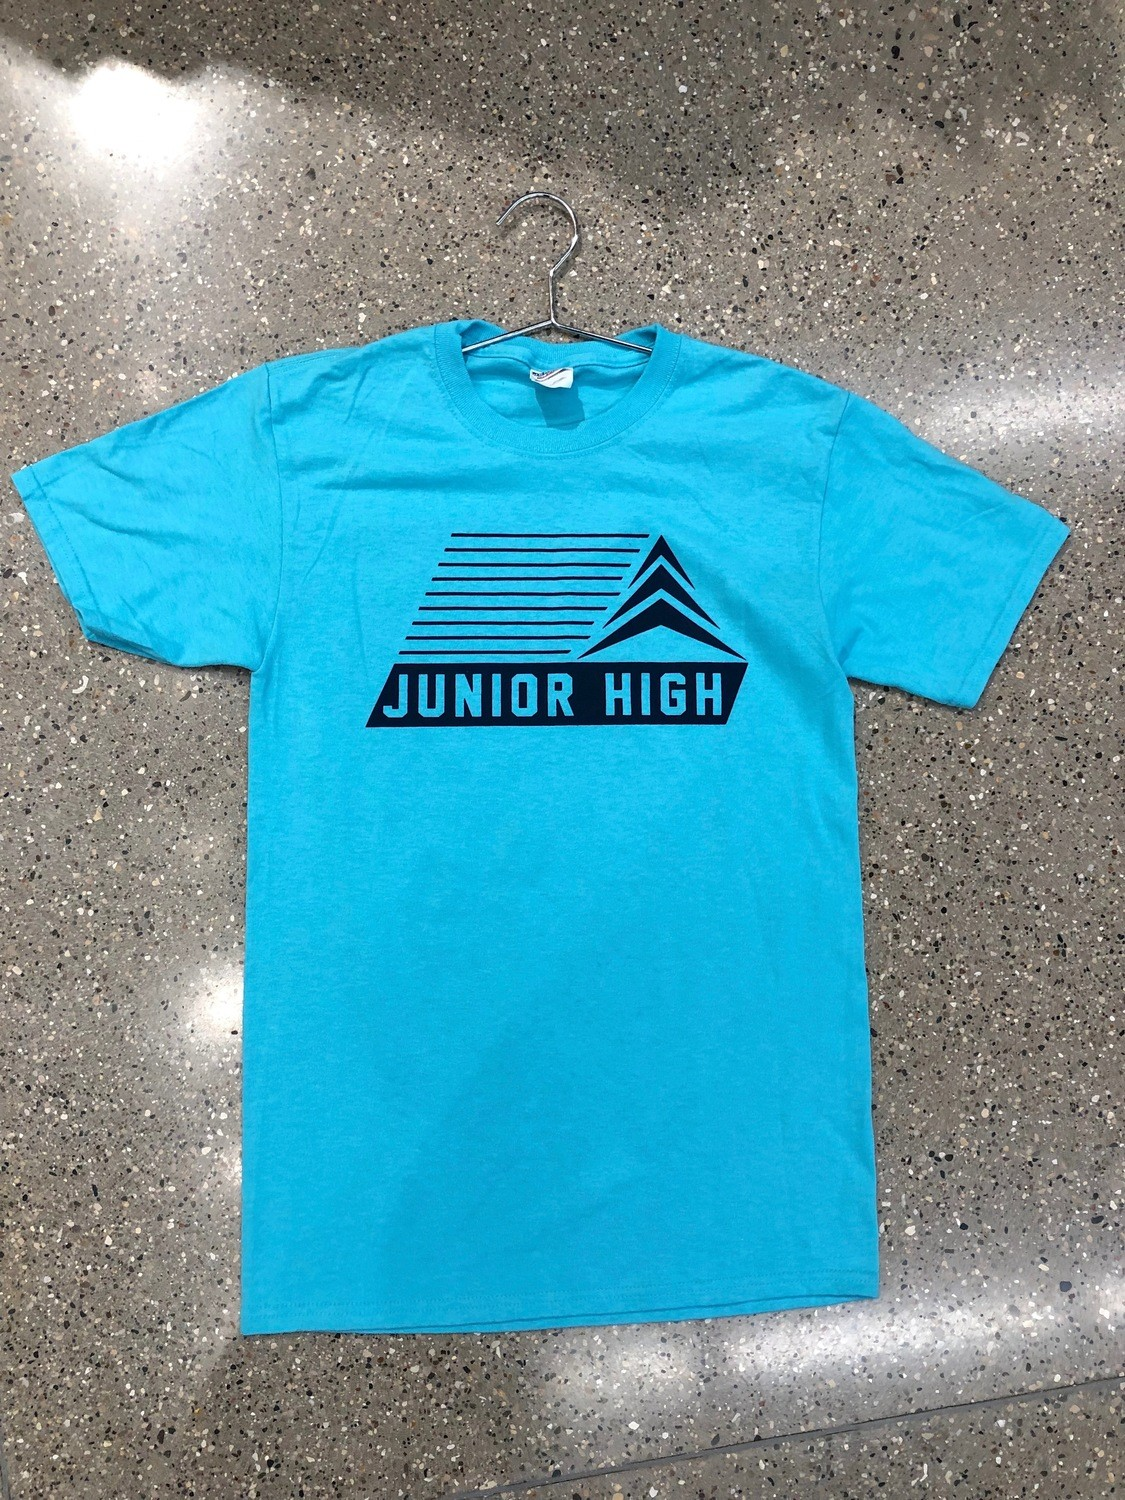 Junior High Tee 2019